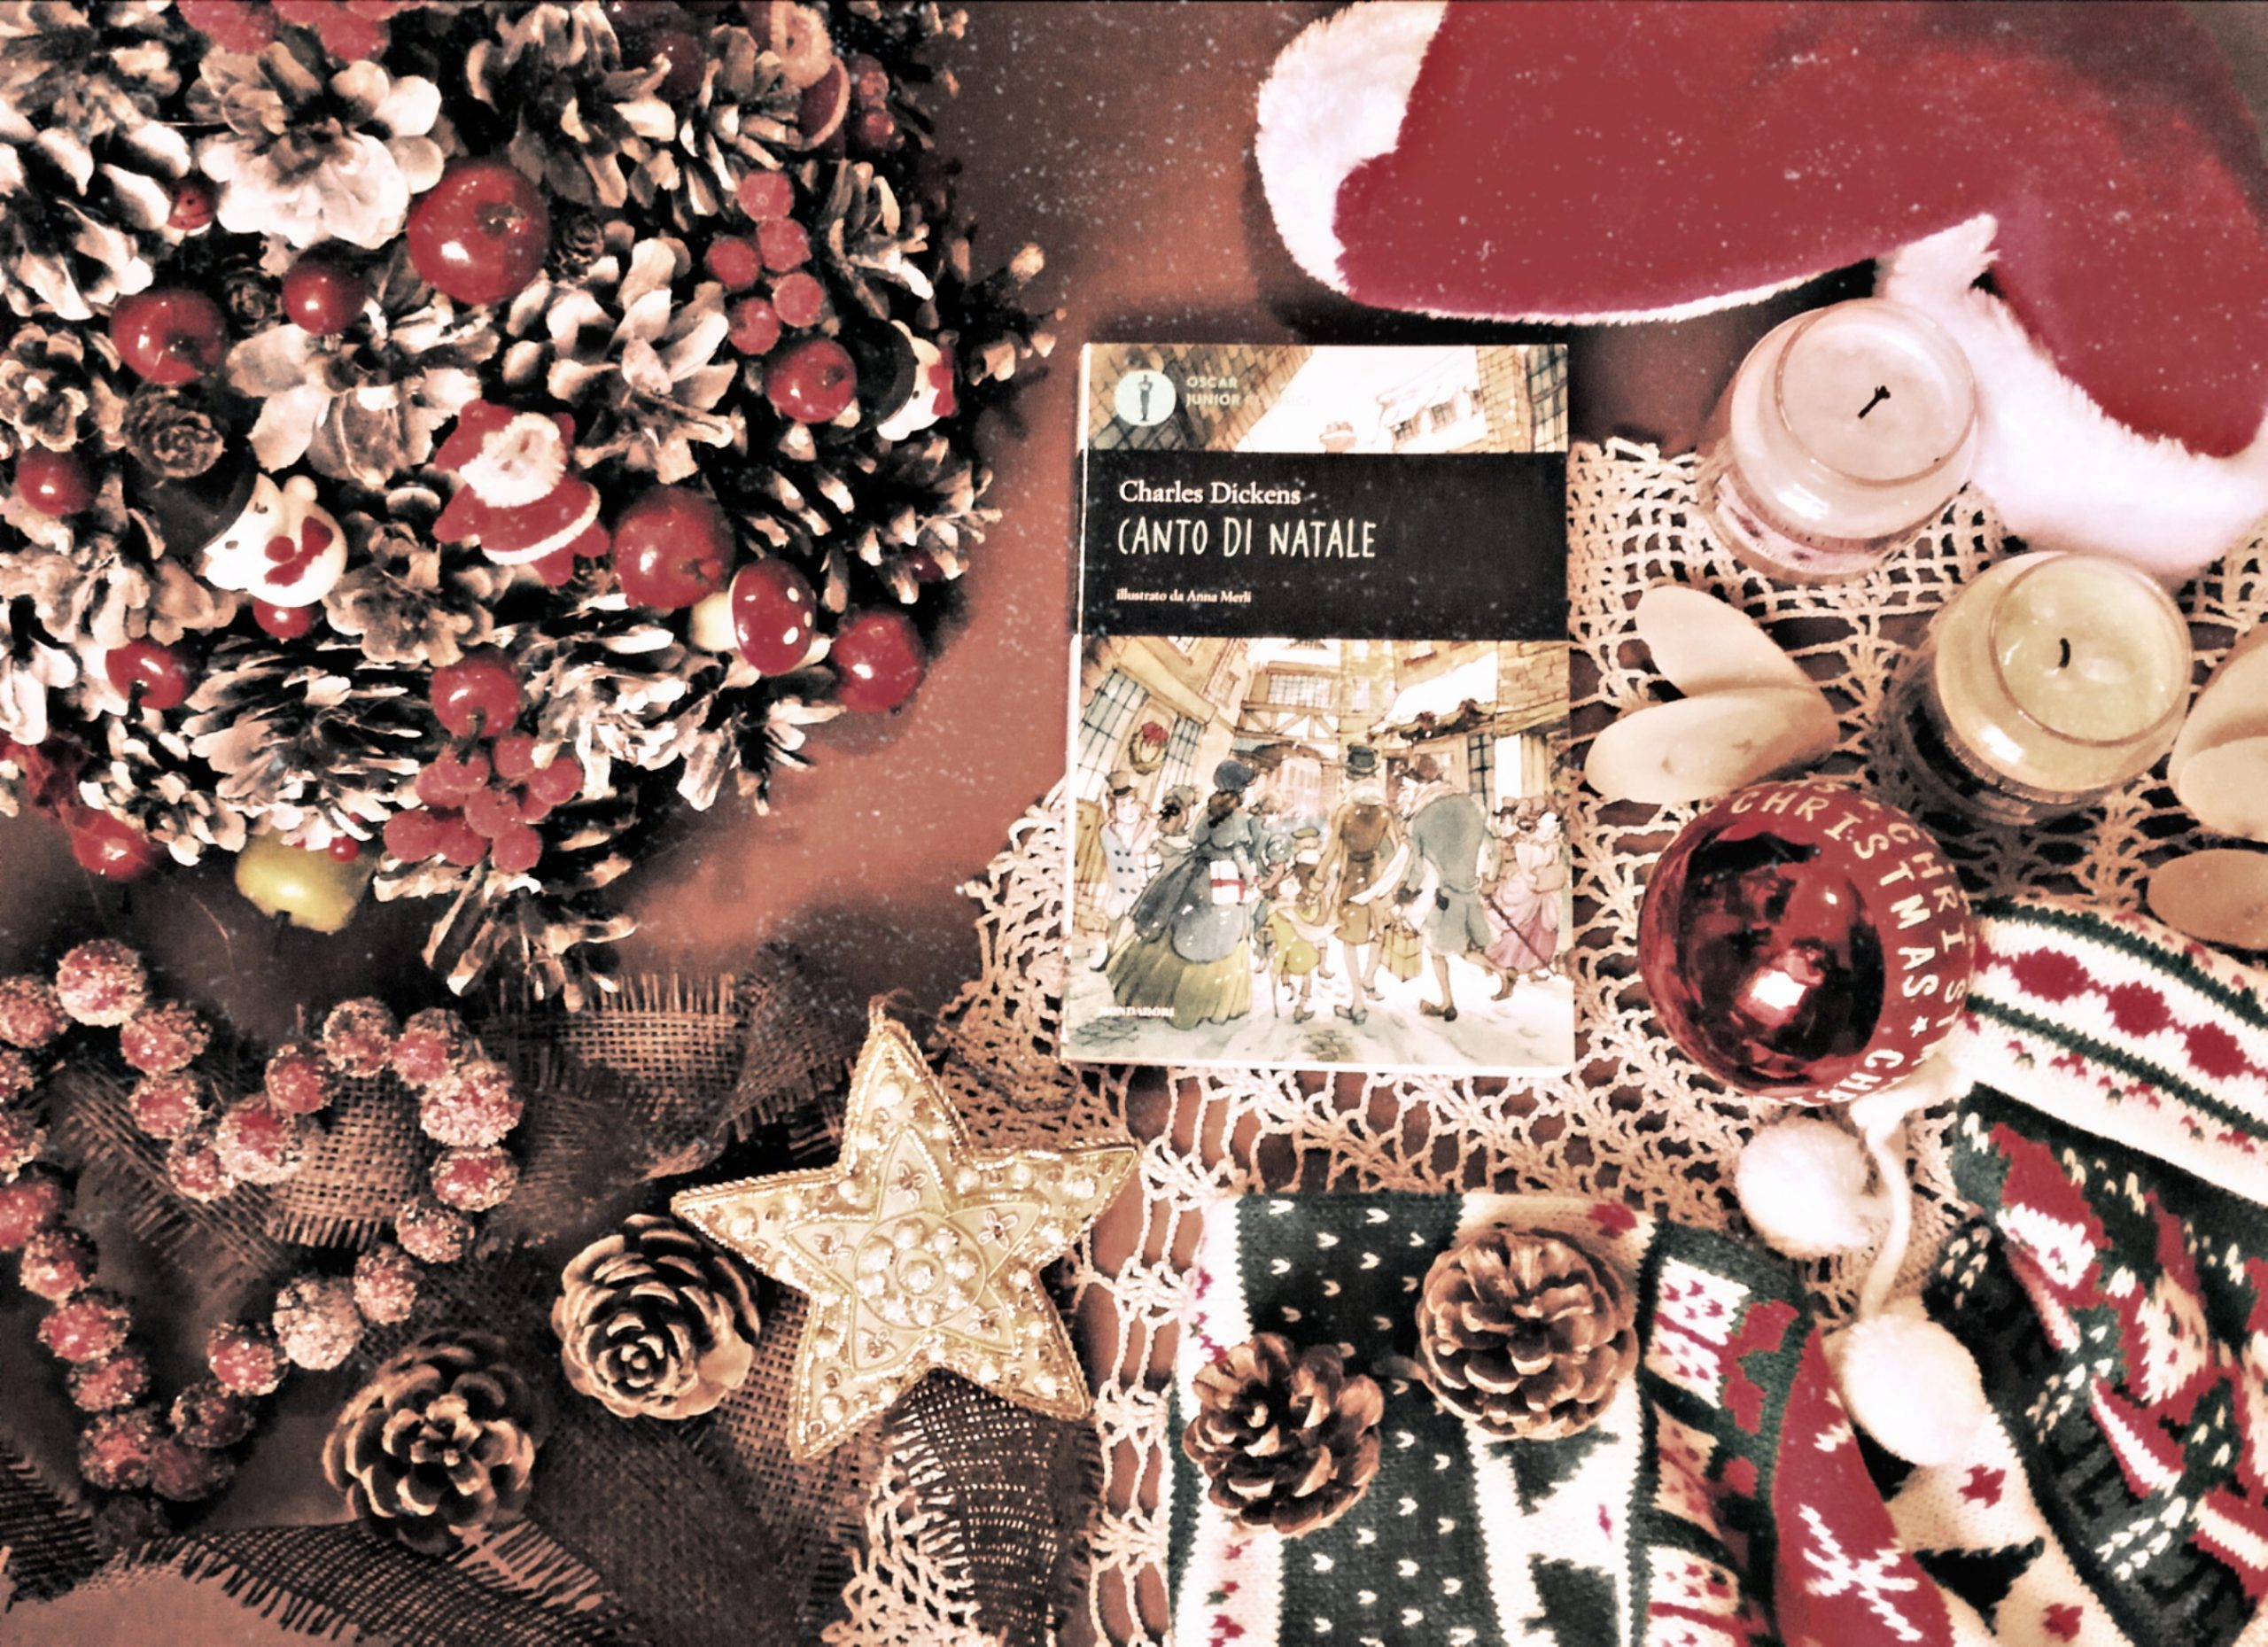 Canto di Natale – Charles Dickens